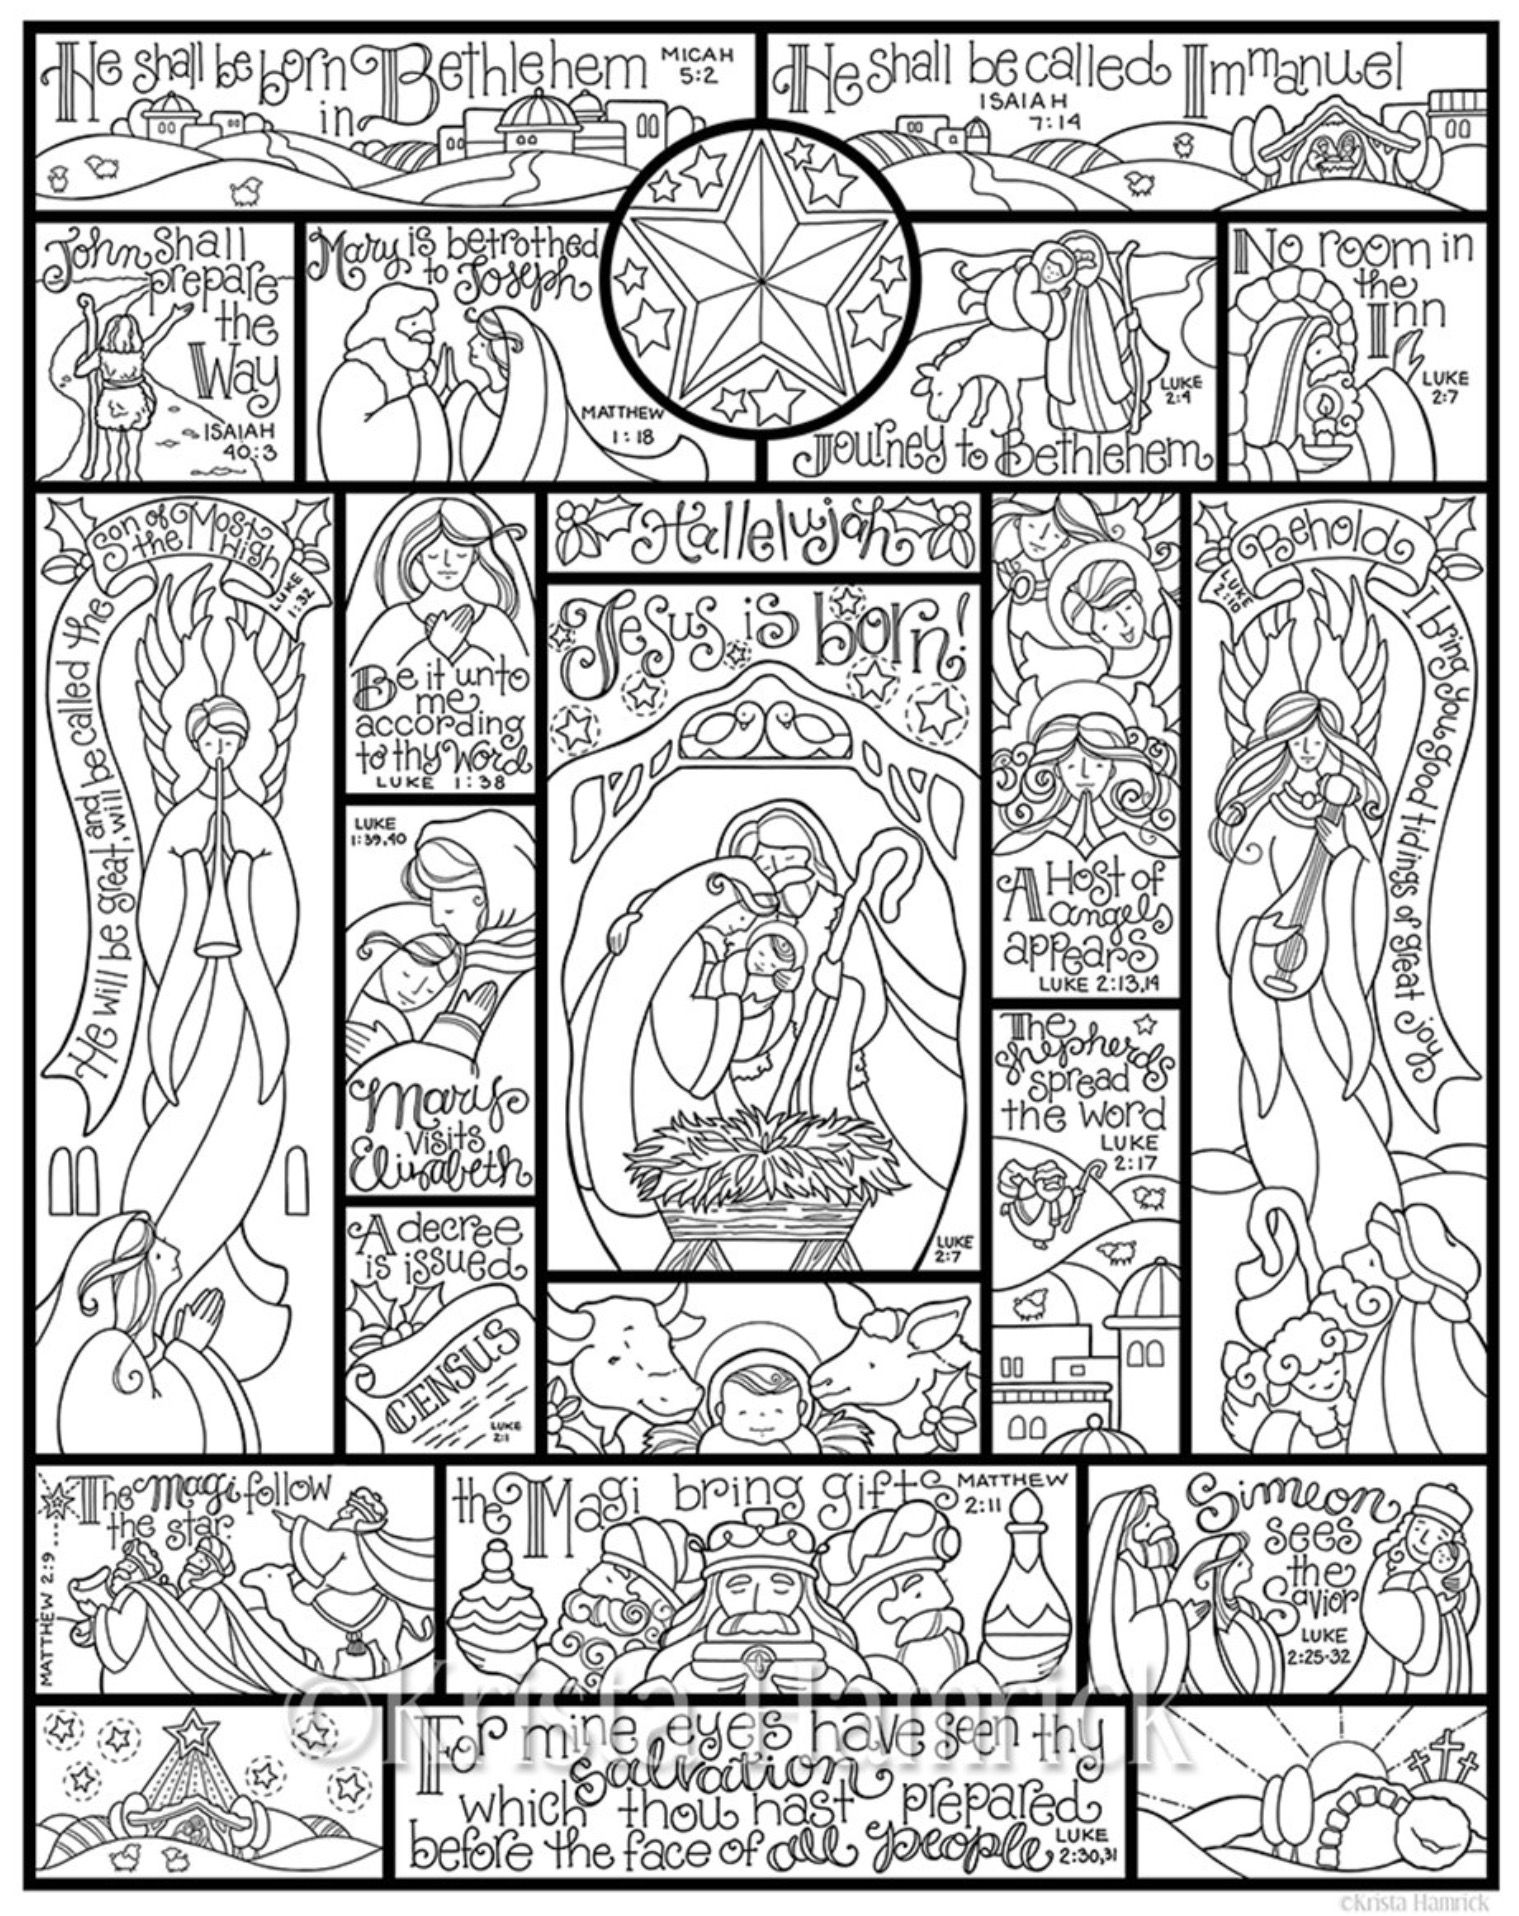 Pin by HALA S Boules on Nativity | Pinterest | Coloring books and ...